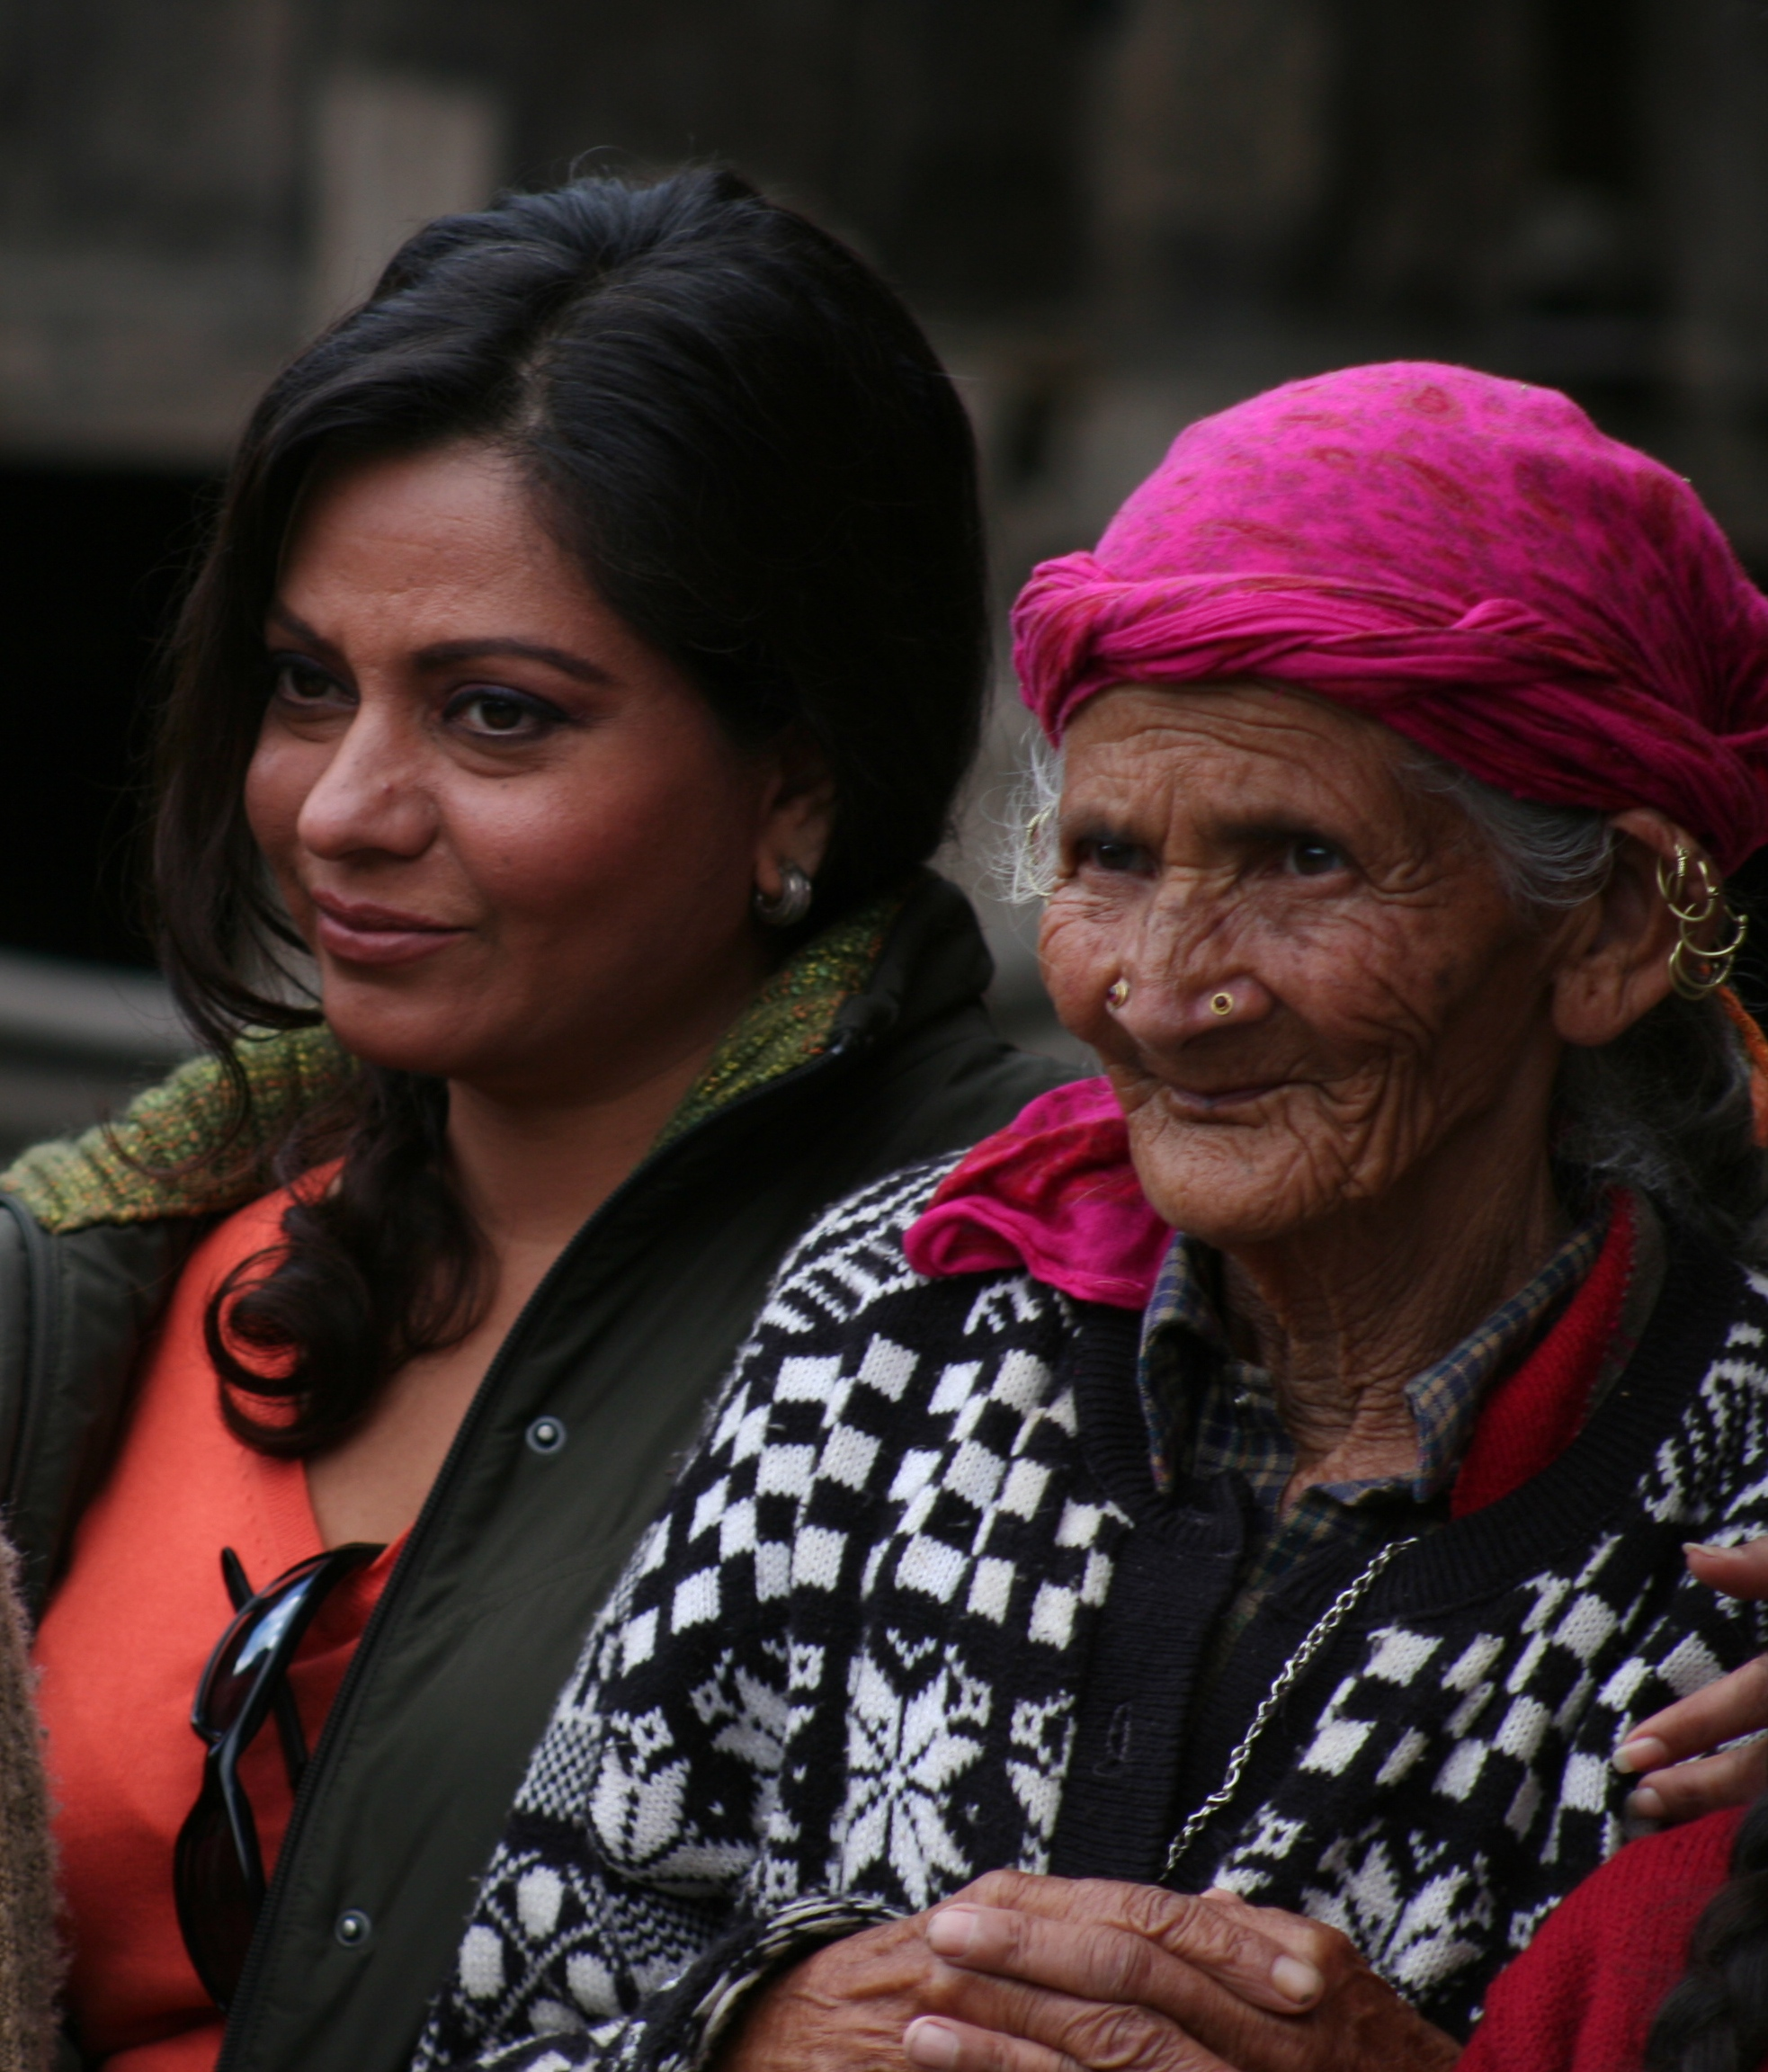 Anu Malhotra, Filmmaker on location 40